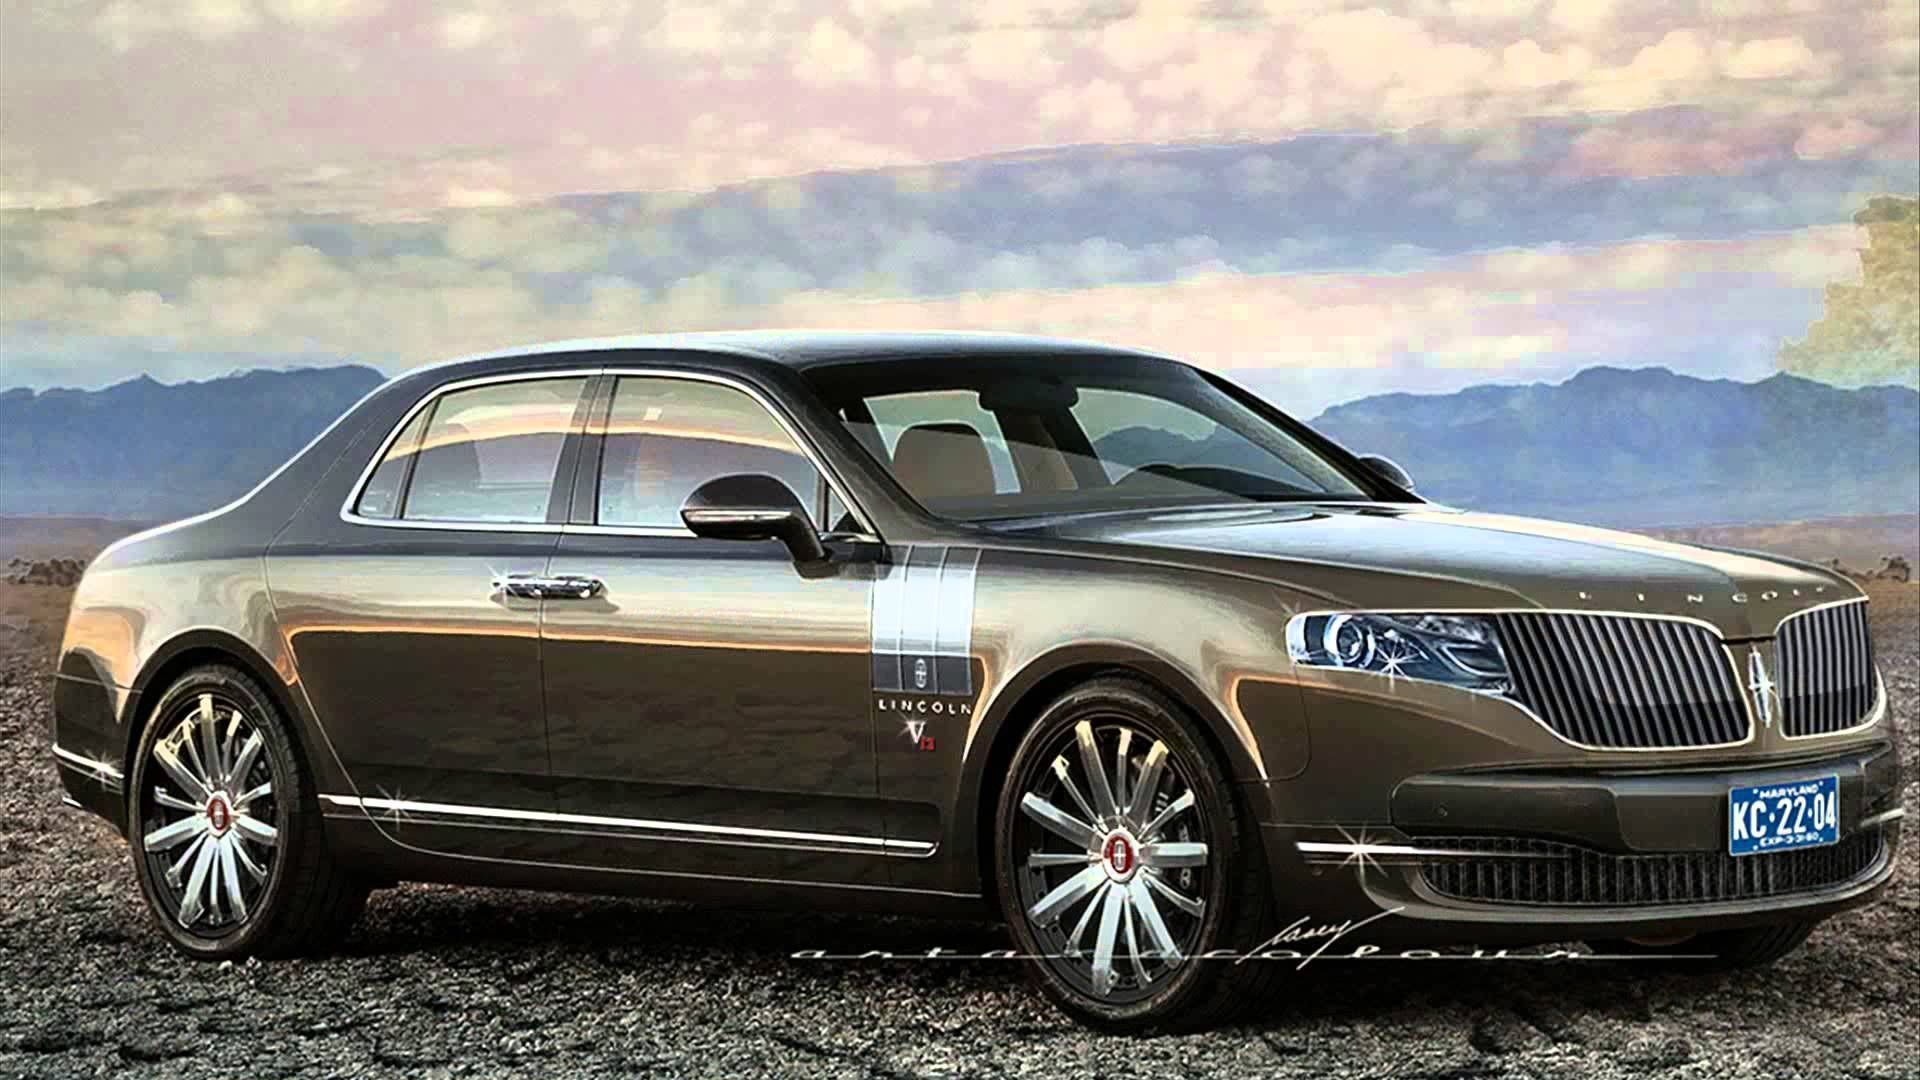 2020 Lincoln Continental Concept in 2020 Lincoln town